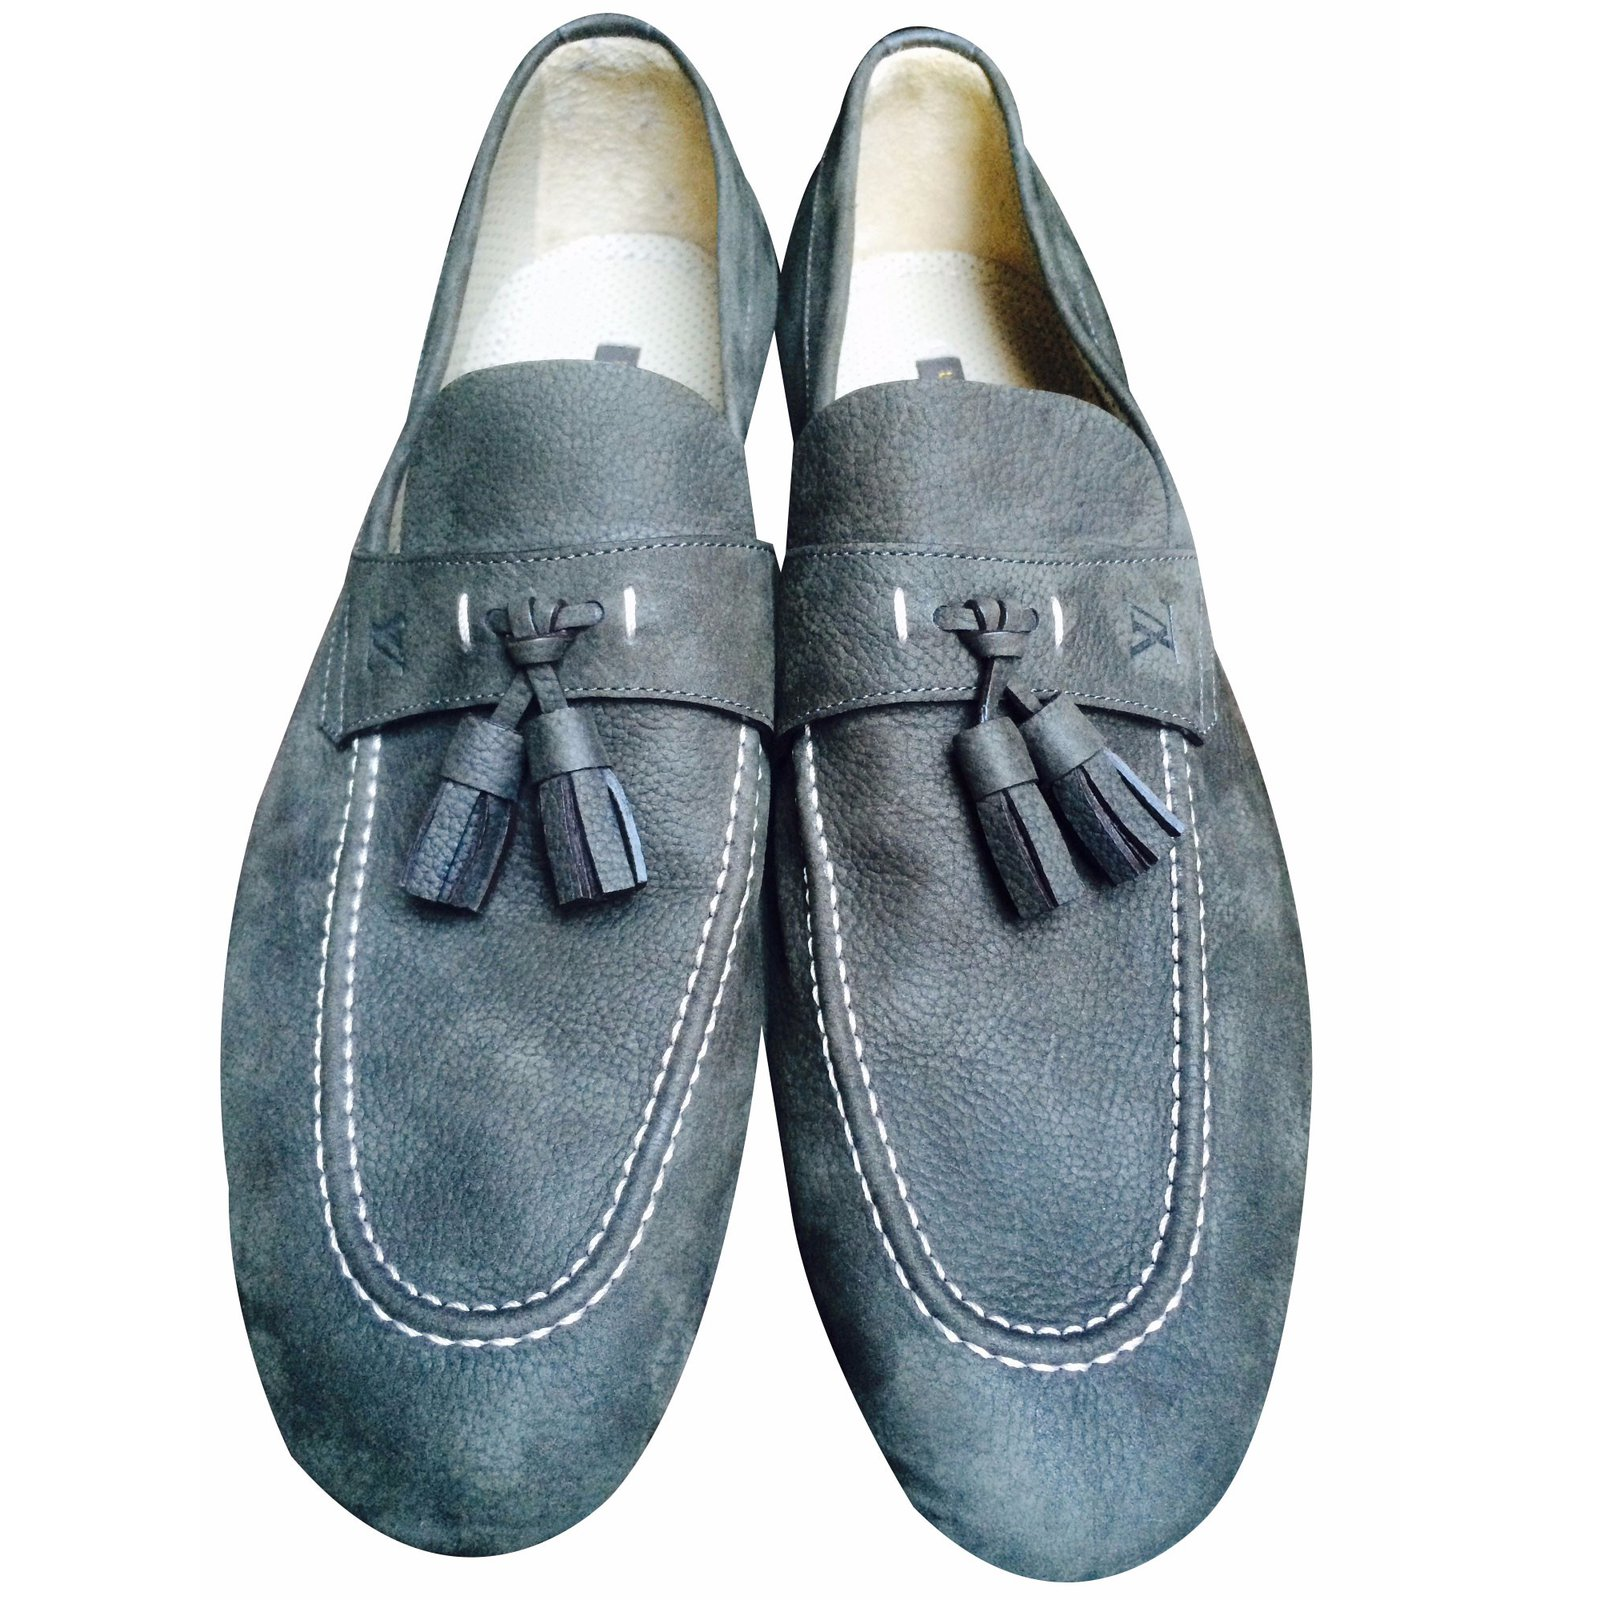 3745bcb4e557 Louis vuitton derbies men sandals suede grey ref joli closet jpg 1600x1600 Louis  vuitton men sandals